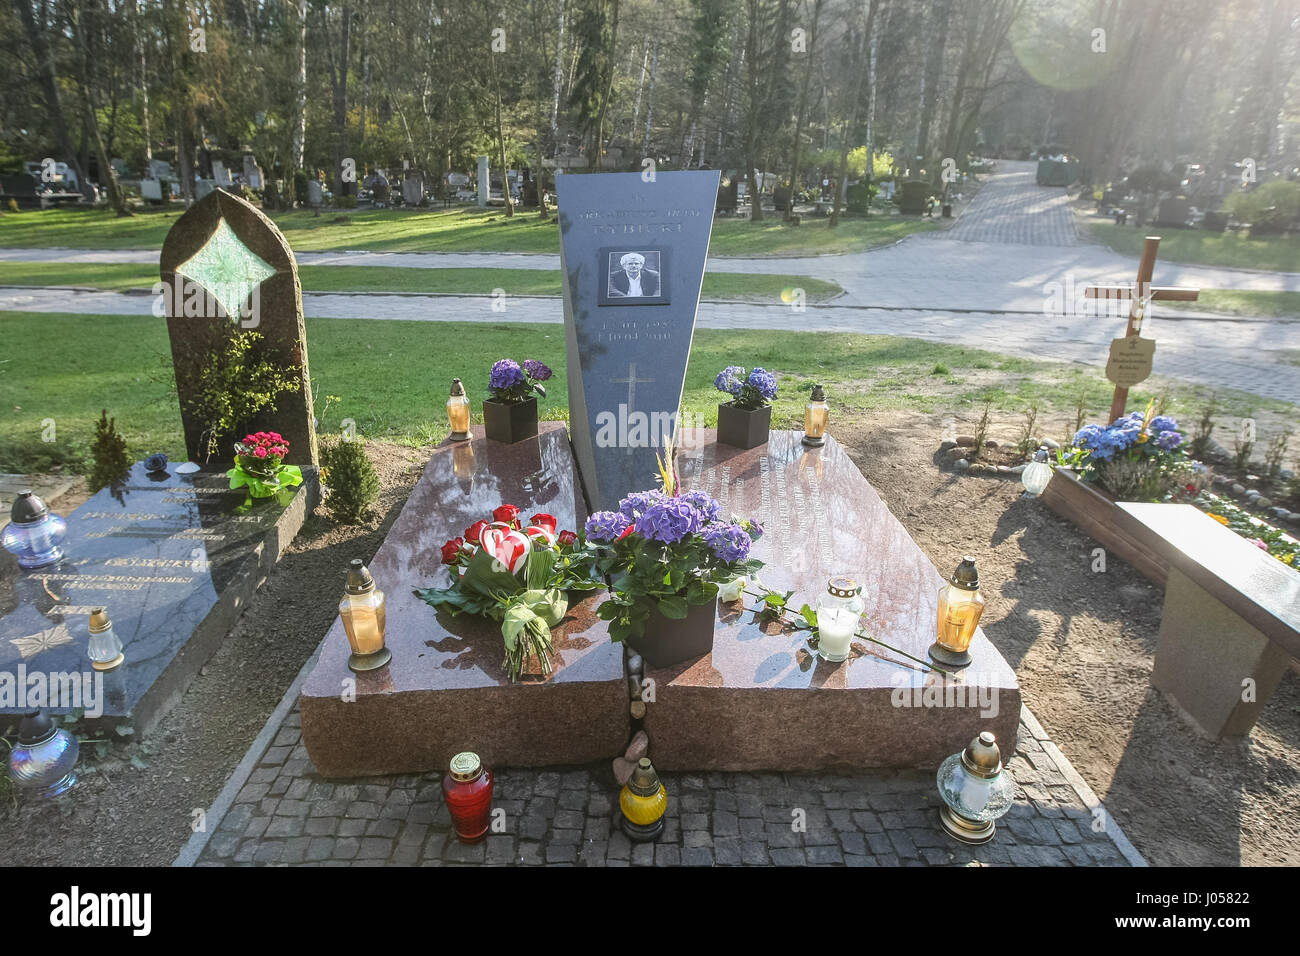 Gdansk Poland 10th April 2017 Aram Rybicki Grave Is Seen On 10 Stock Photo Alamy With matchups, skill order and best items, this graves guide. alamy